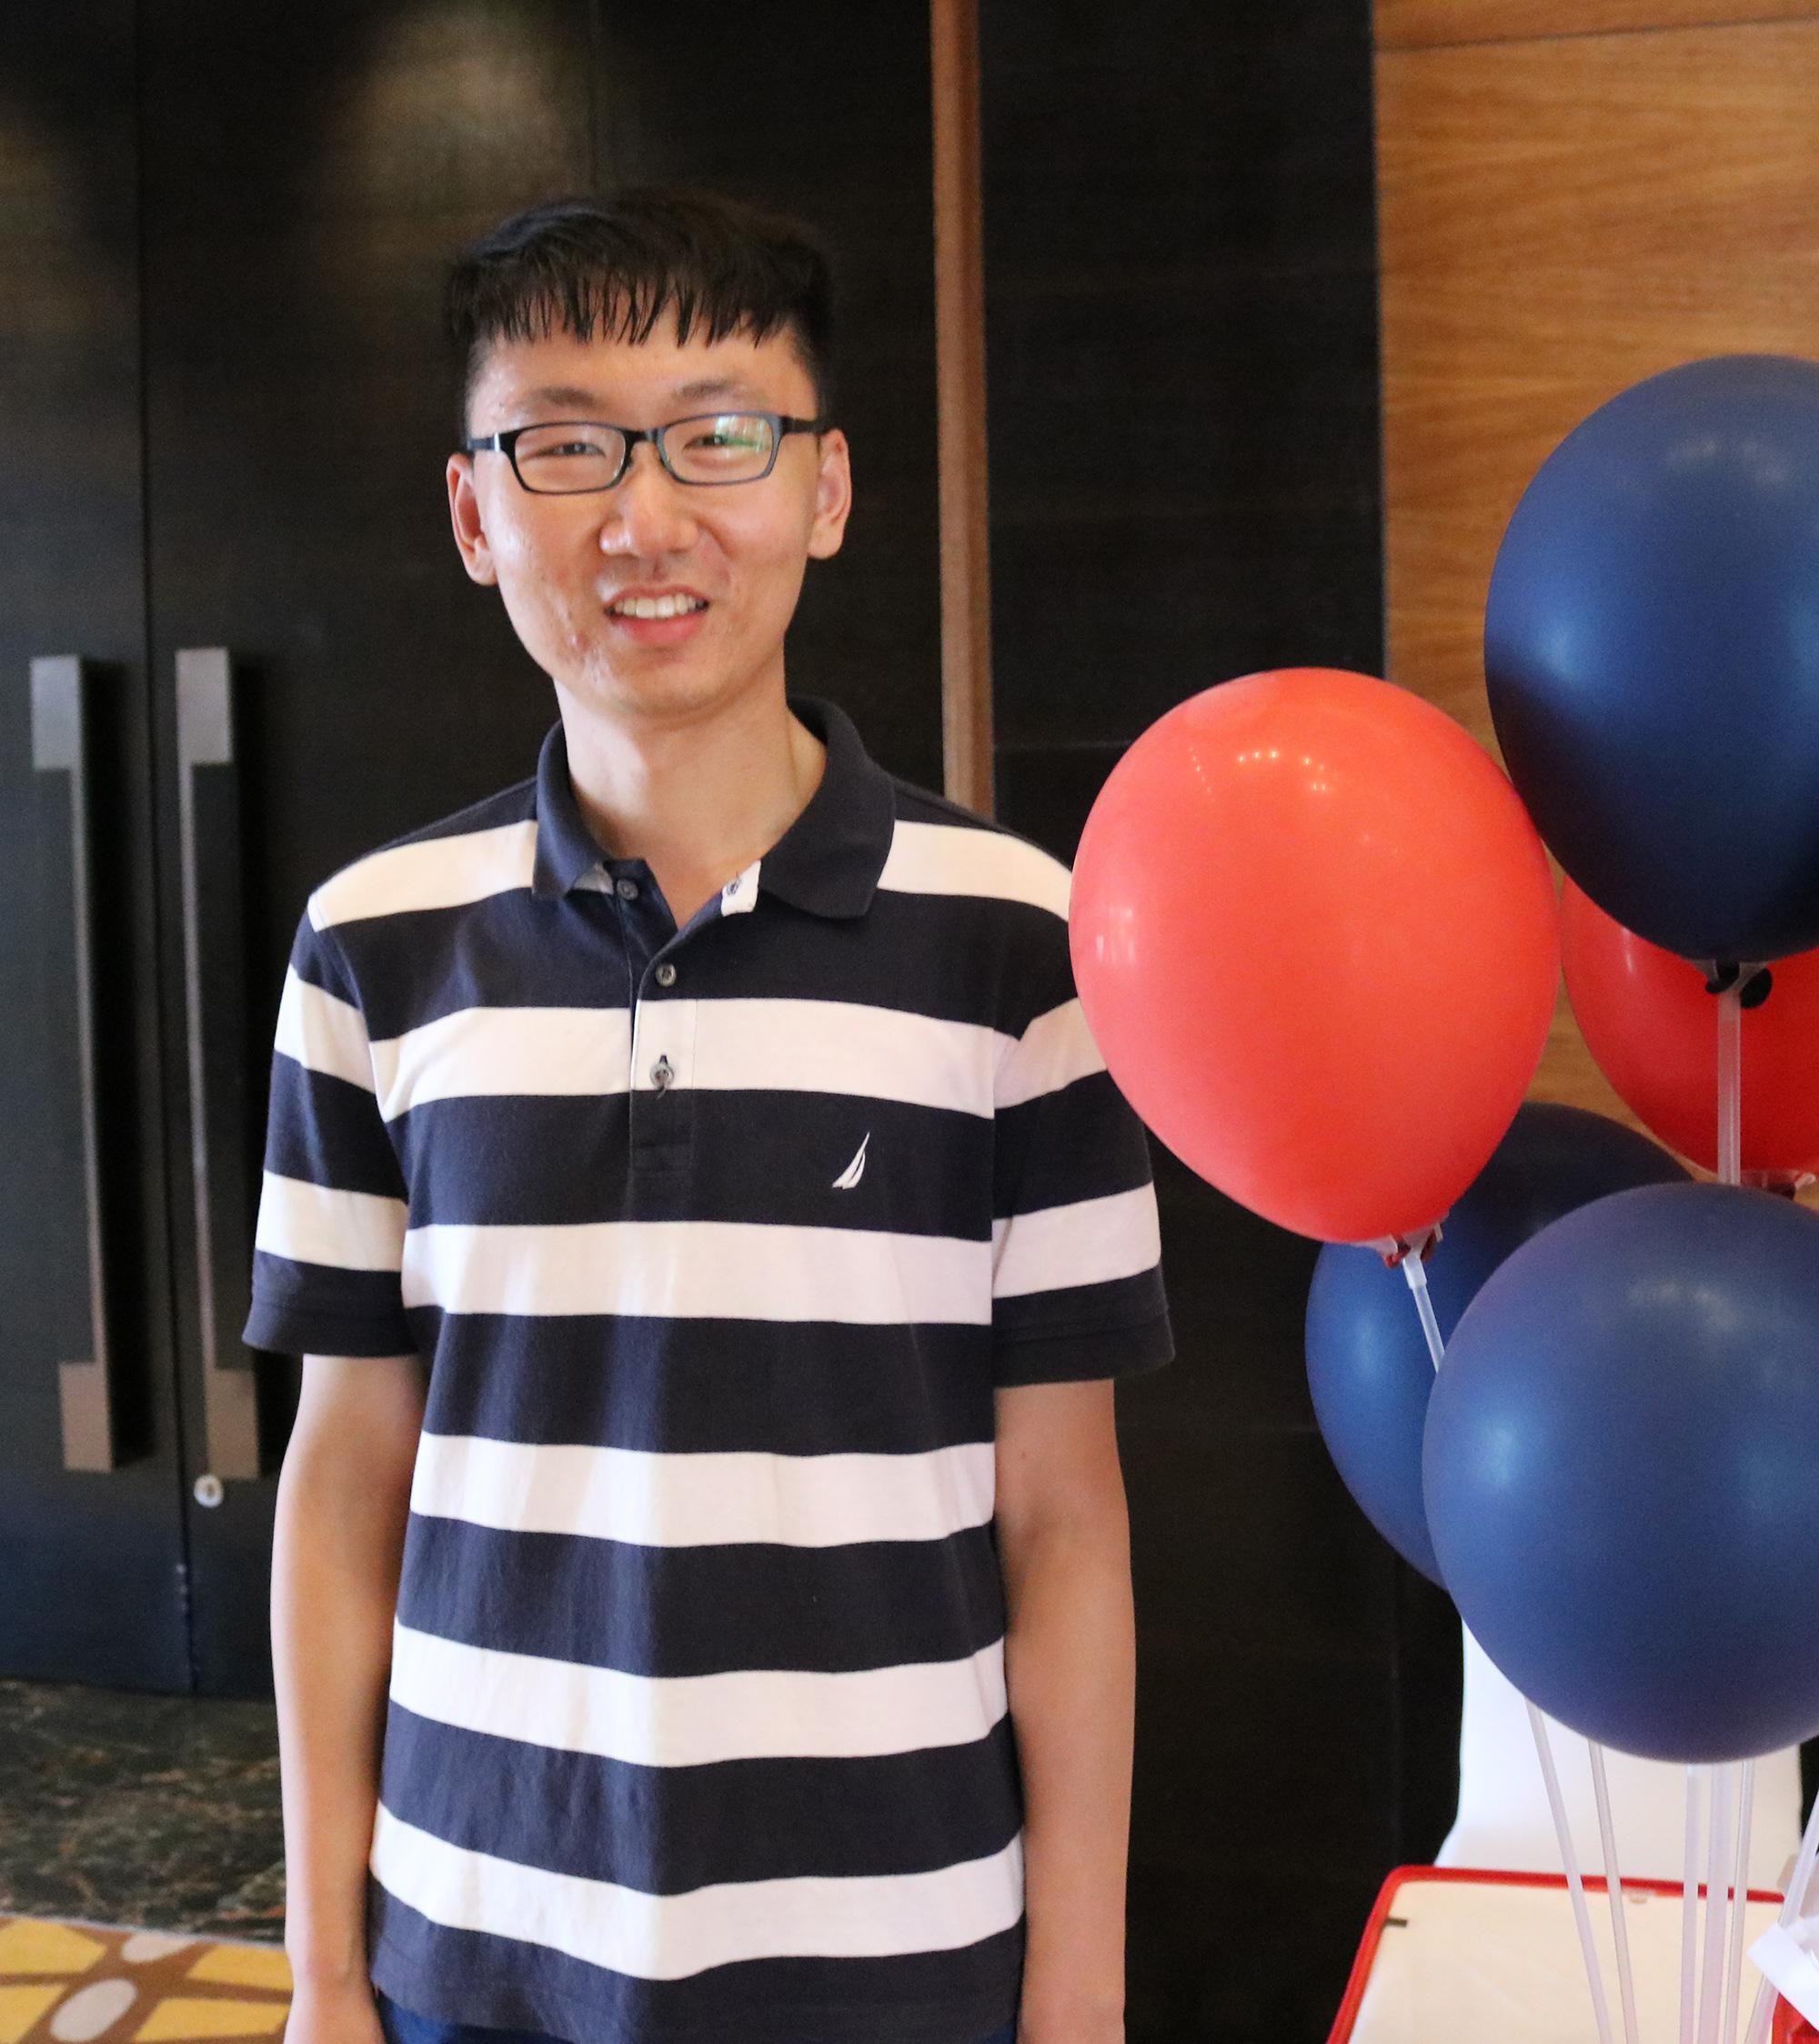 Xueda Qiu, a member of the first cohort of graduates from the micro-campus at Ocean University, will begin a graduate program in law at Northwestern University in the fall of 2019.